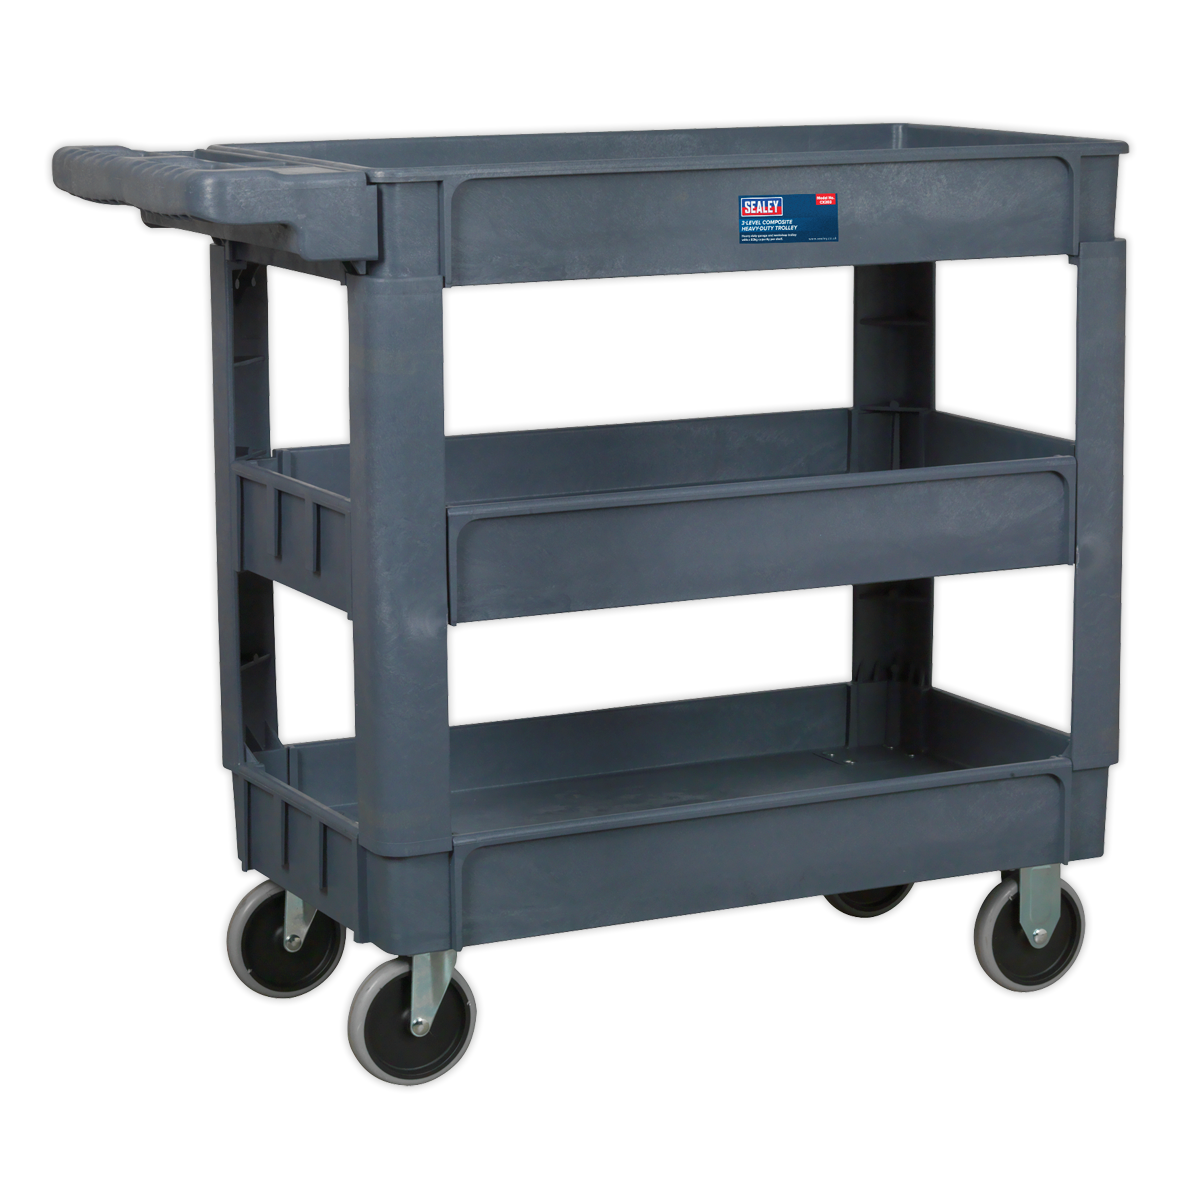 SEALEY TROLLEY WITH HANDLE 3-LEVEL COMPOSITE HEAVY DUTY